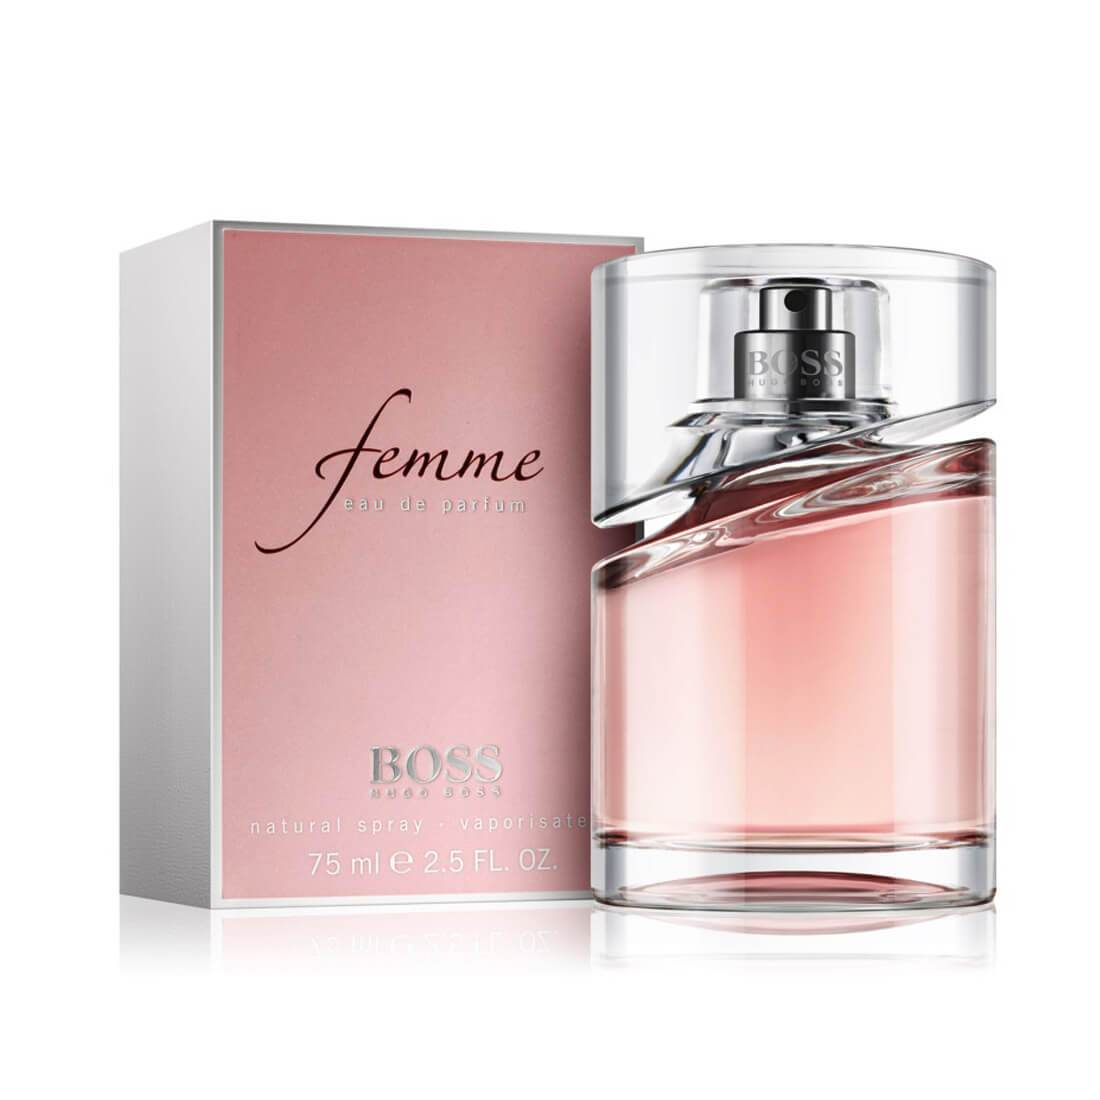 Hugo Boss BOSS Femme Eau De Parfume For Women 75ml